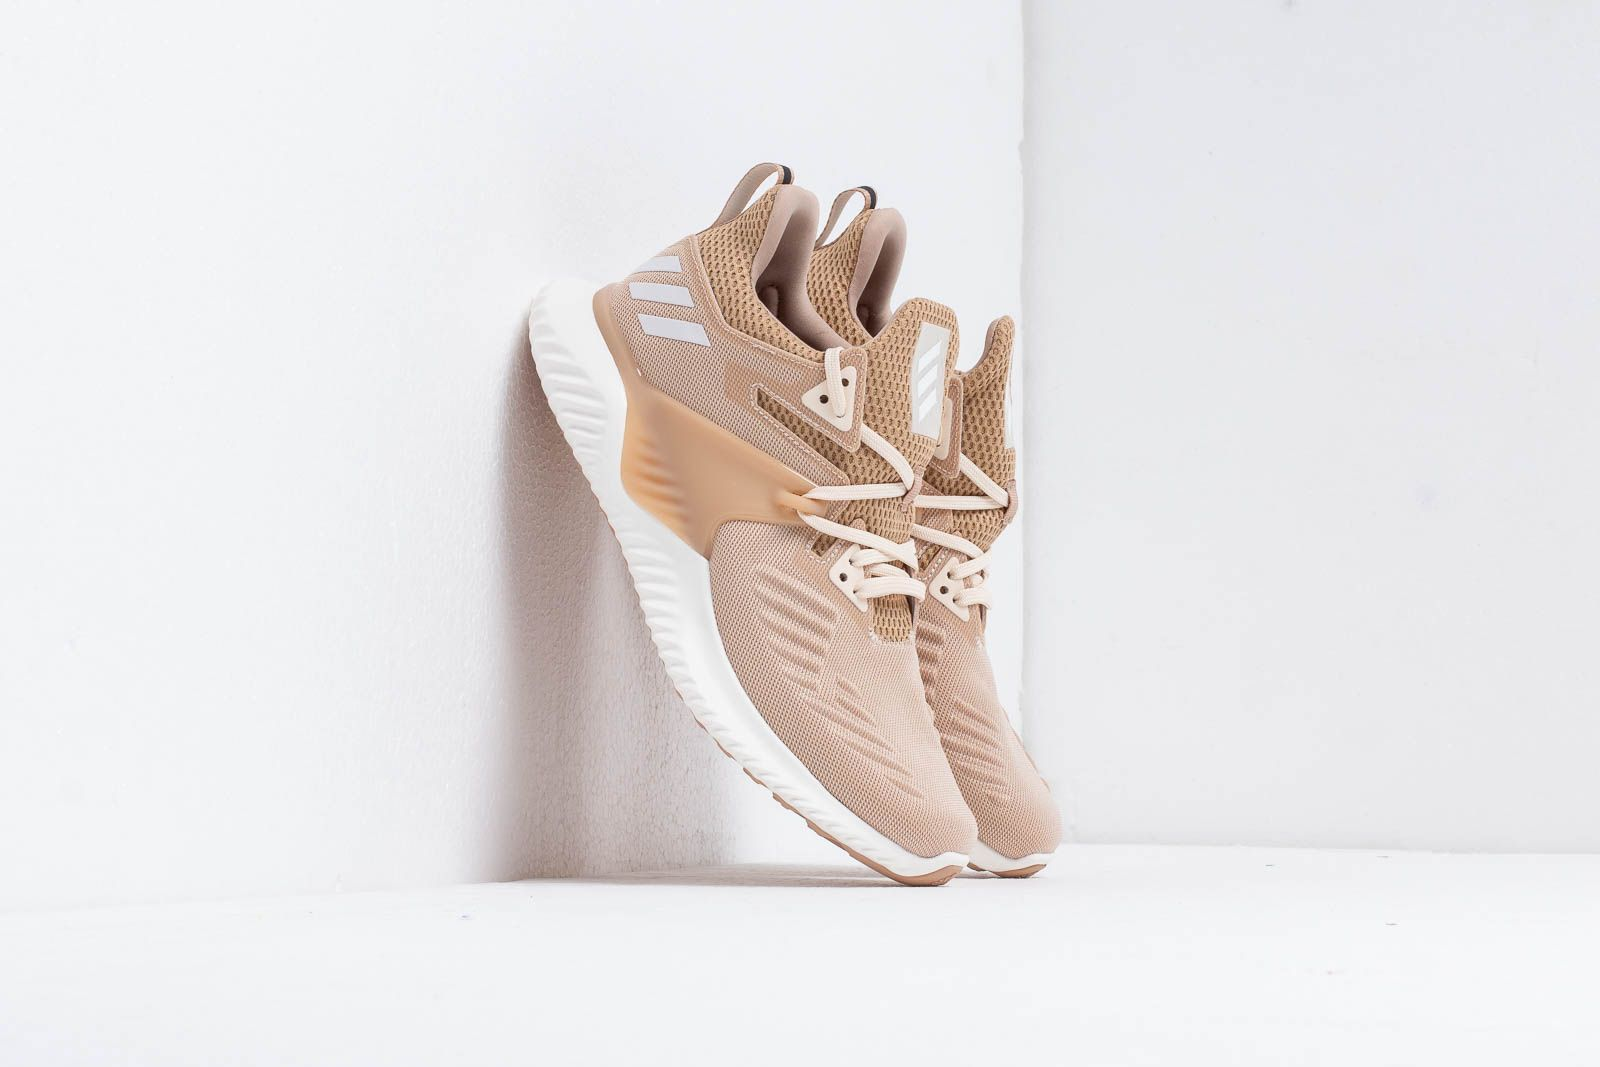 3db03c4bb adidas Alphabounce Beyond 2 M Ecrtin  Chalk White  St Pale Nude at a great